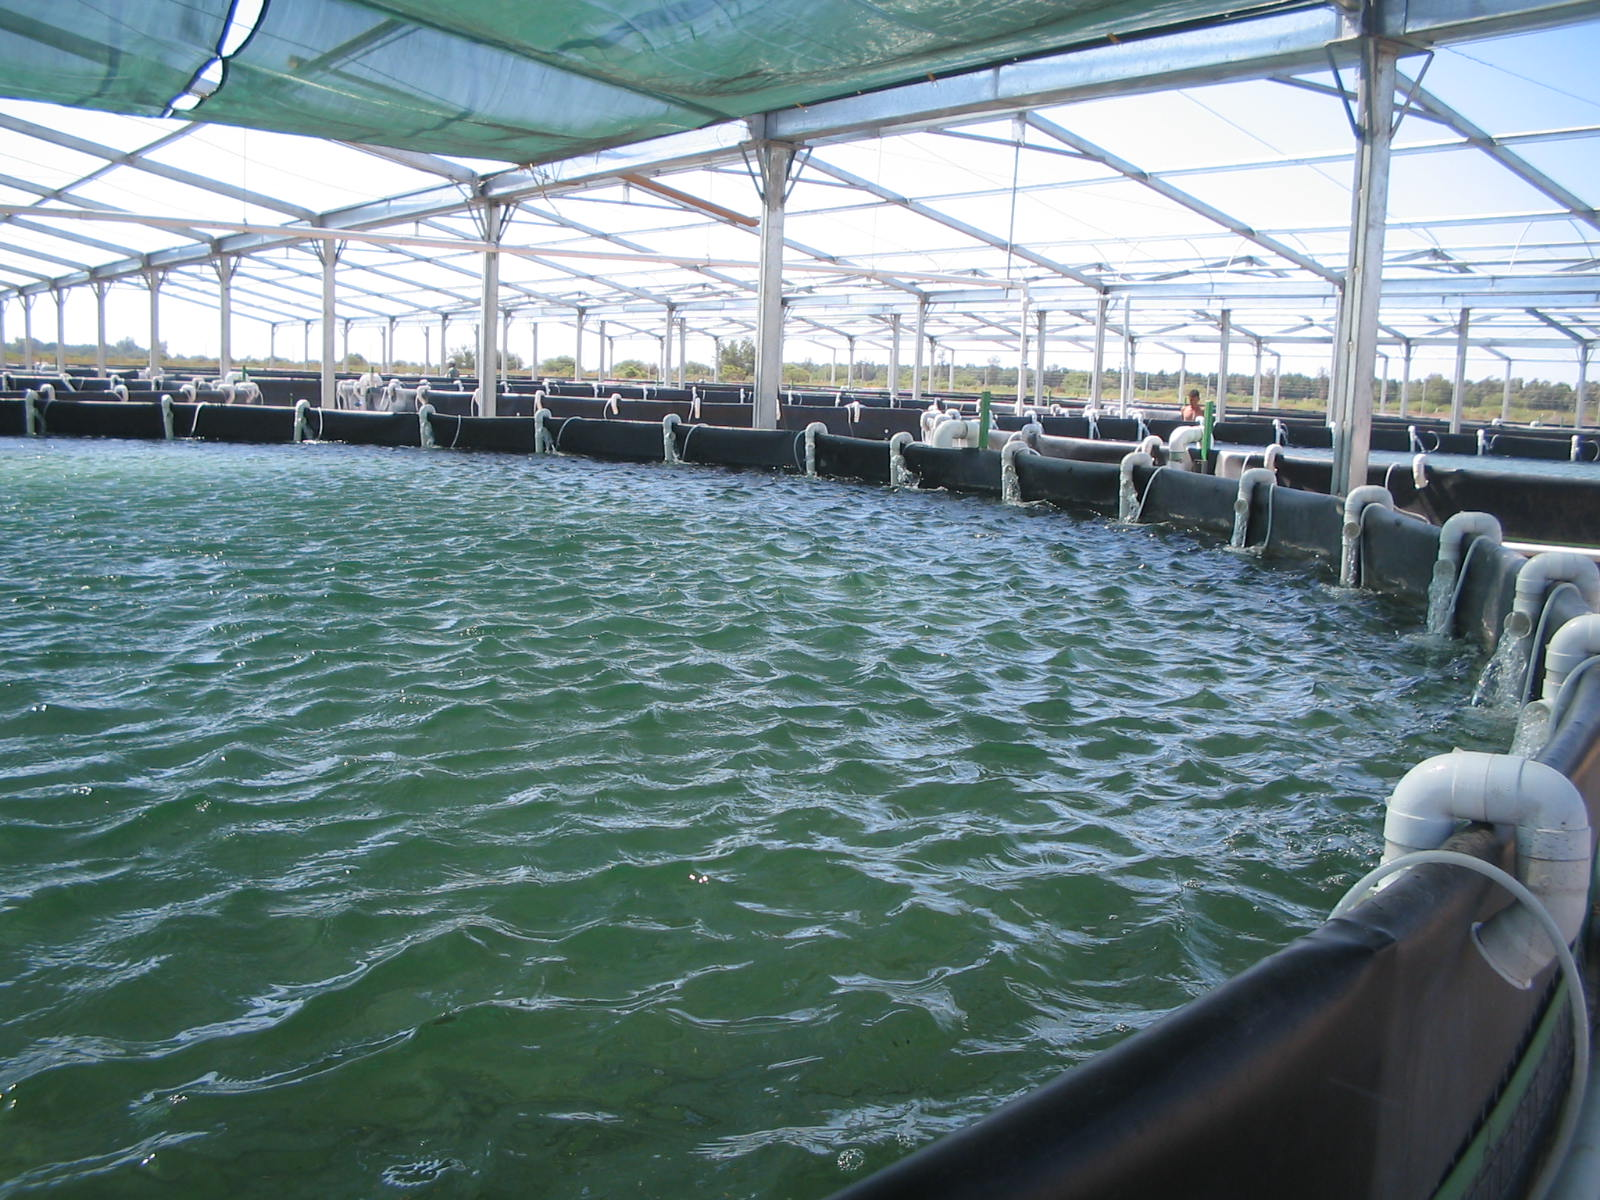 Study Backs Biofloc Benefits In Shrimp Production